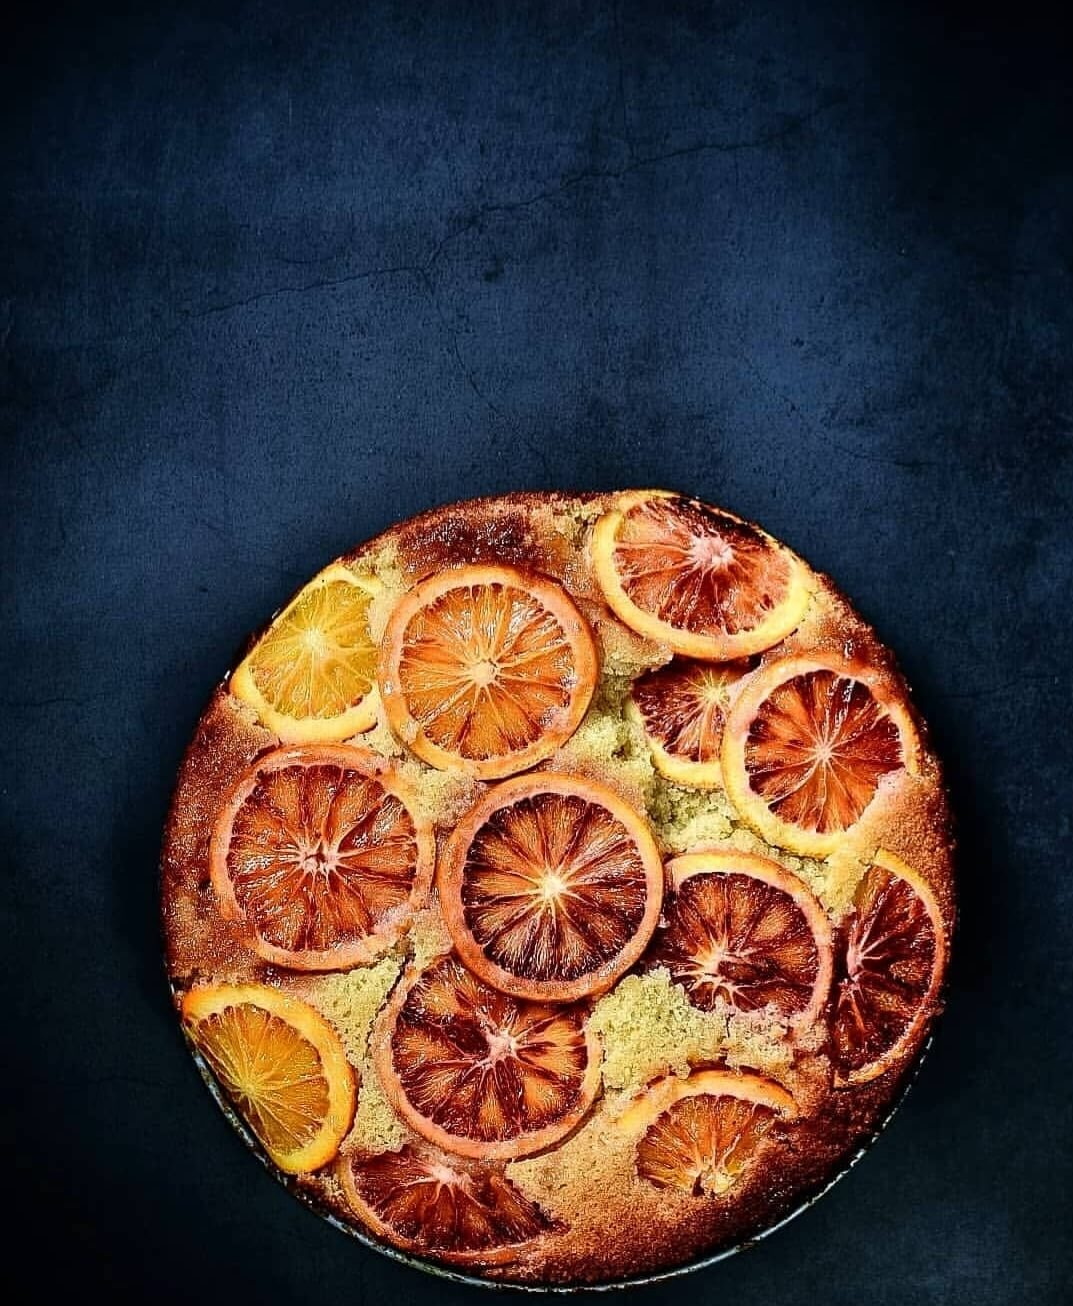 upside down sinaasappelcake